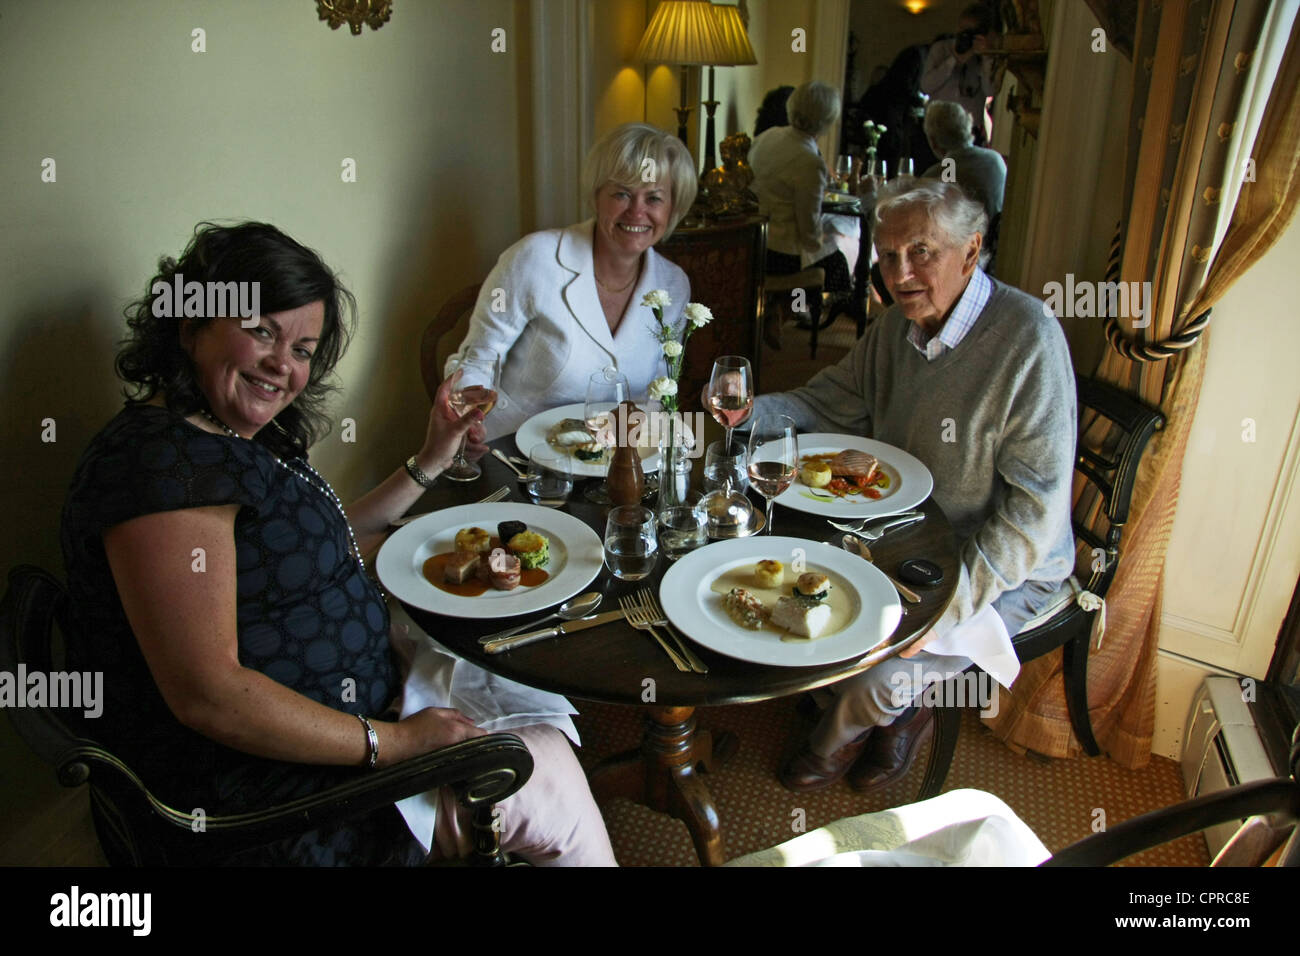 three diners in a restaurant, table set for four - Stock Image